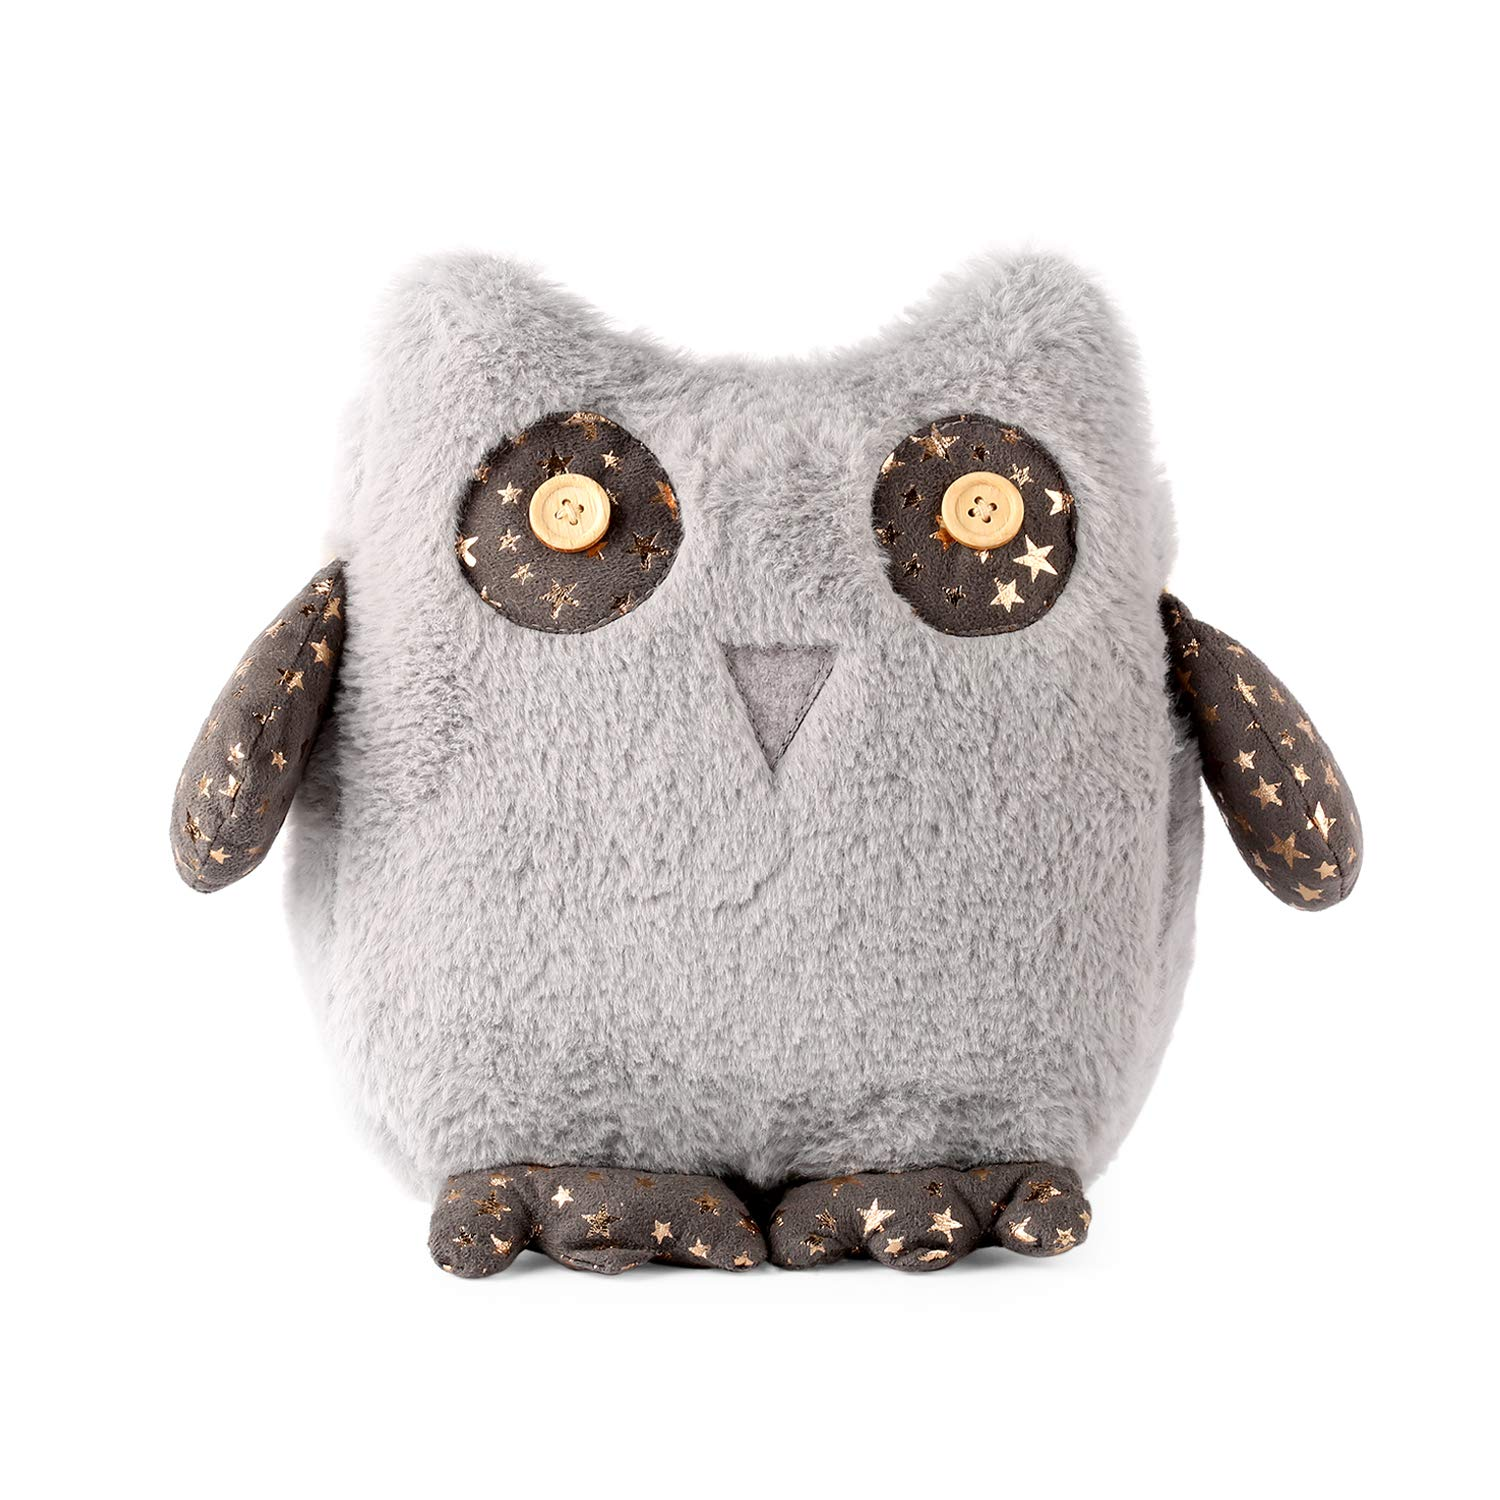 meowtastic Great Gray Owl Plush Home Decor 8 1/2 Inches Stuffed Animal